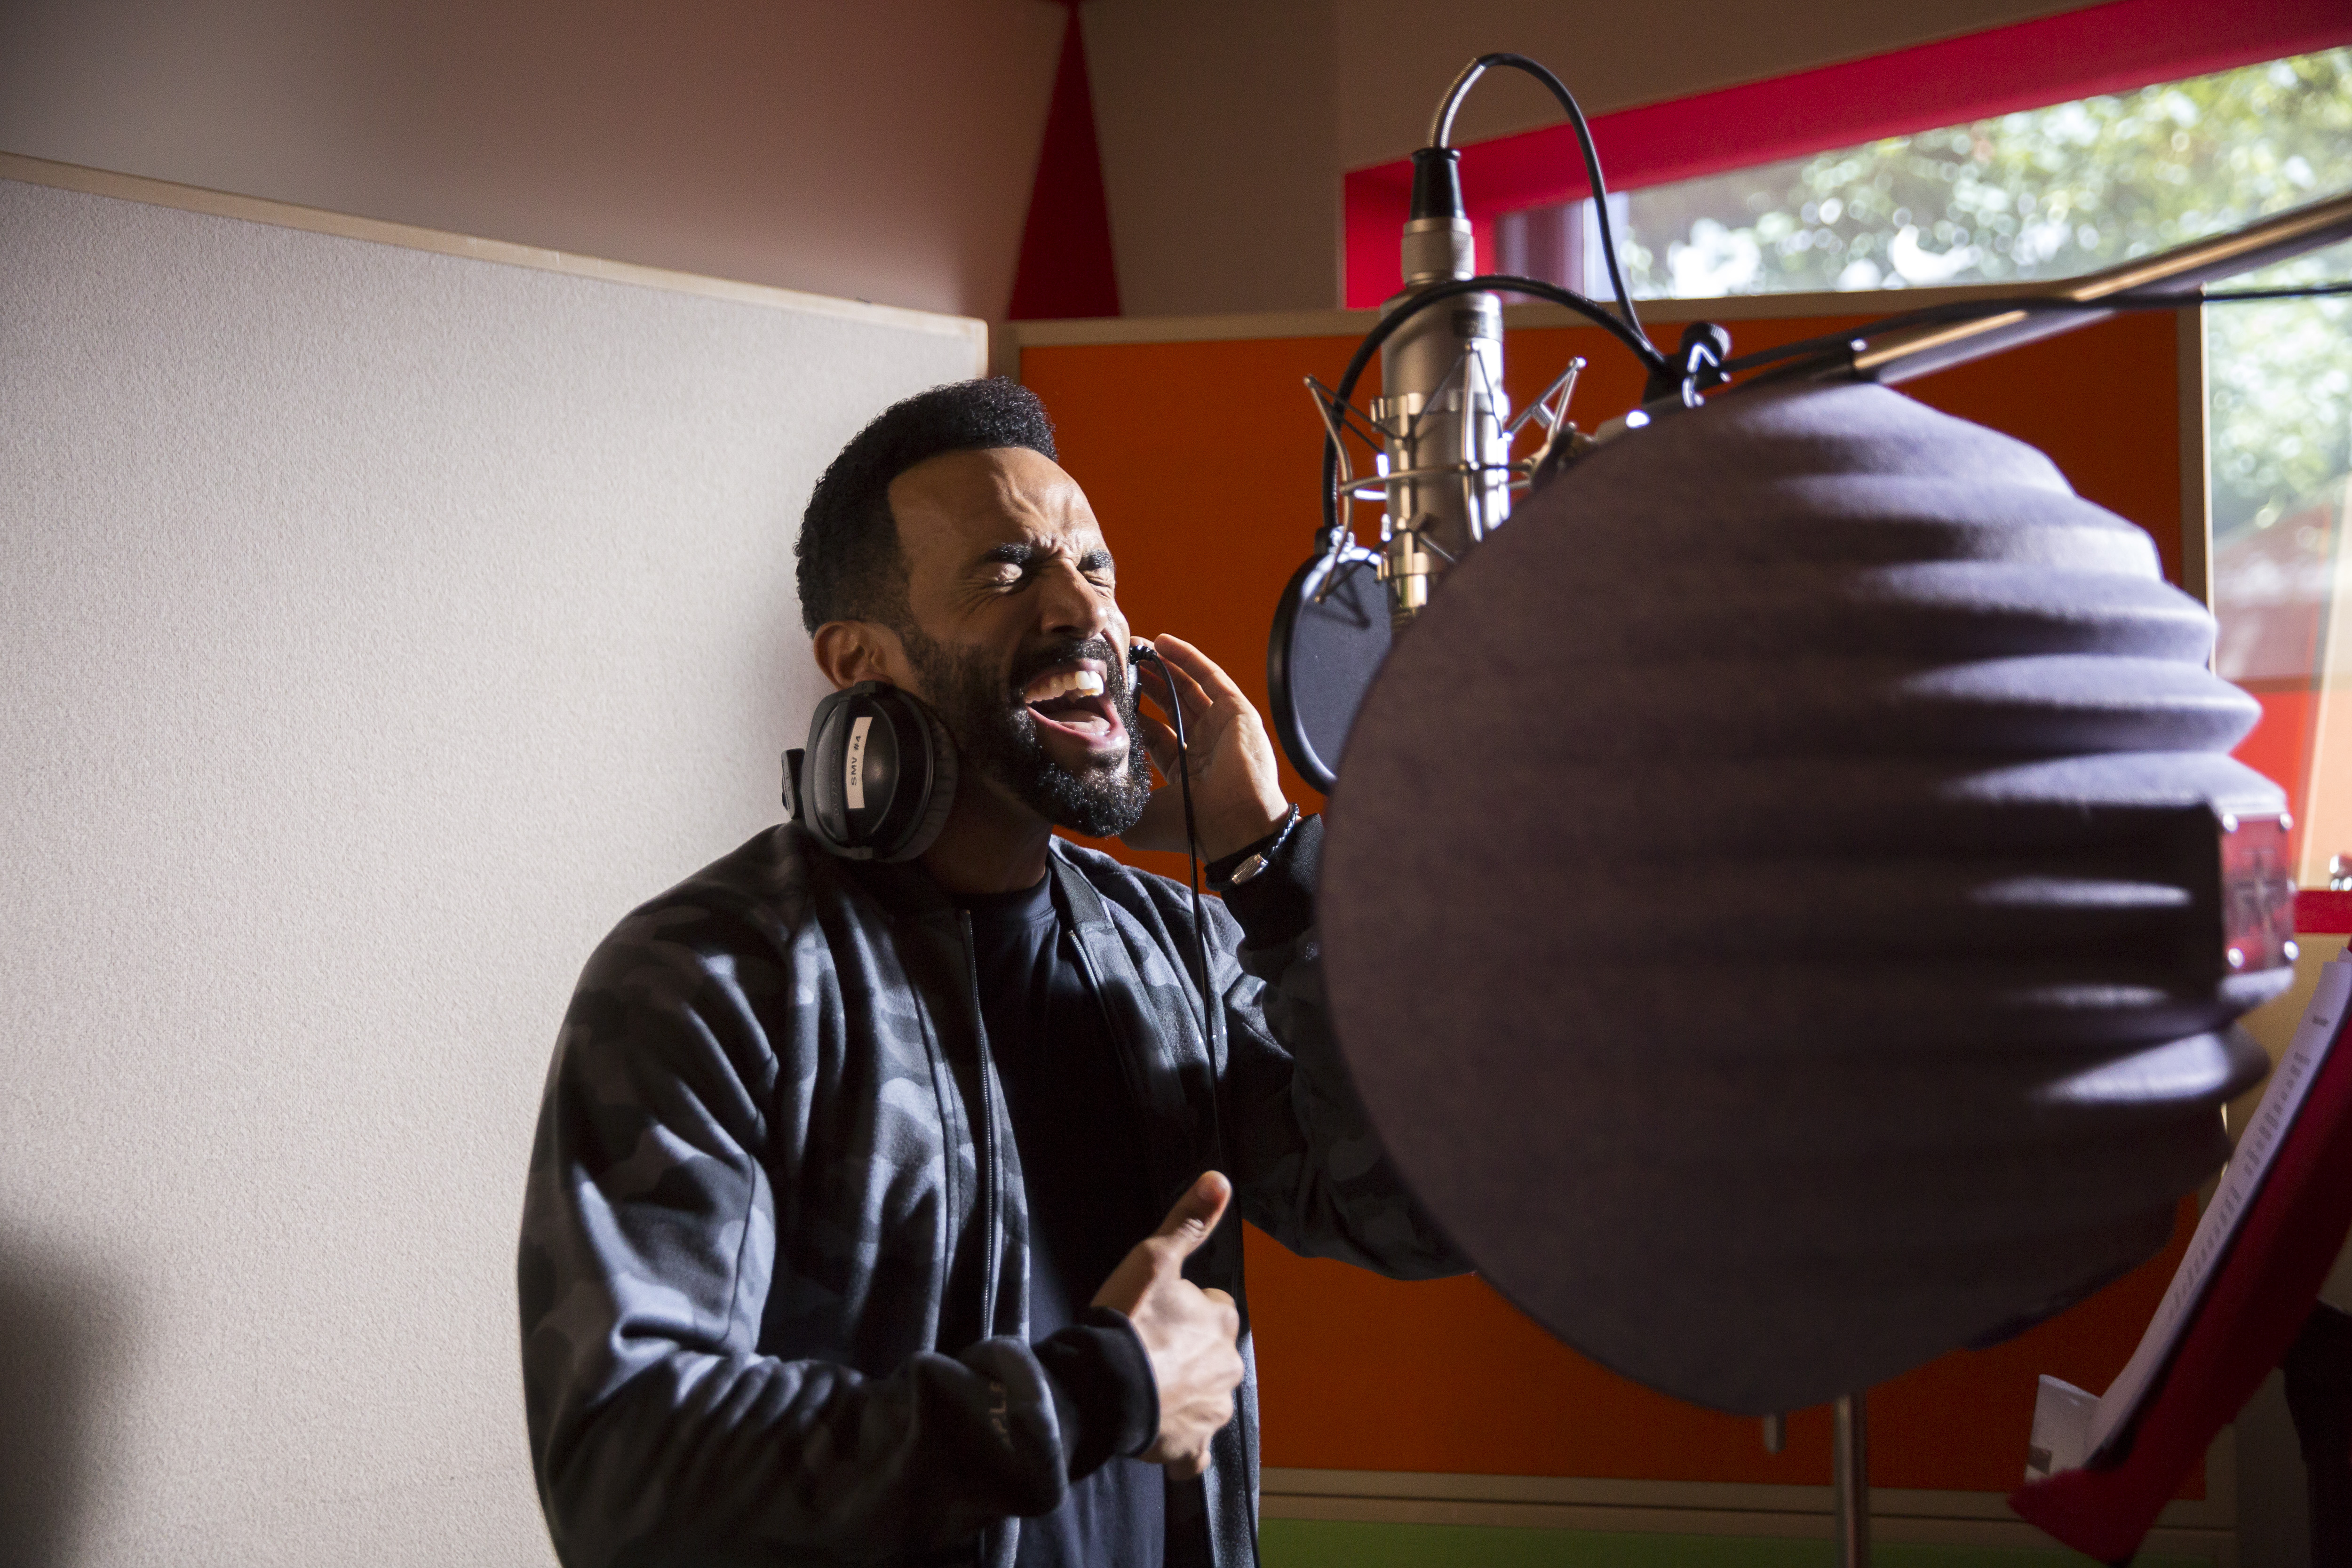 Grenfell Behind the scenes Craig David